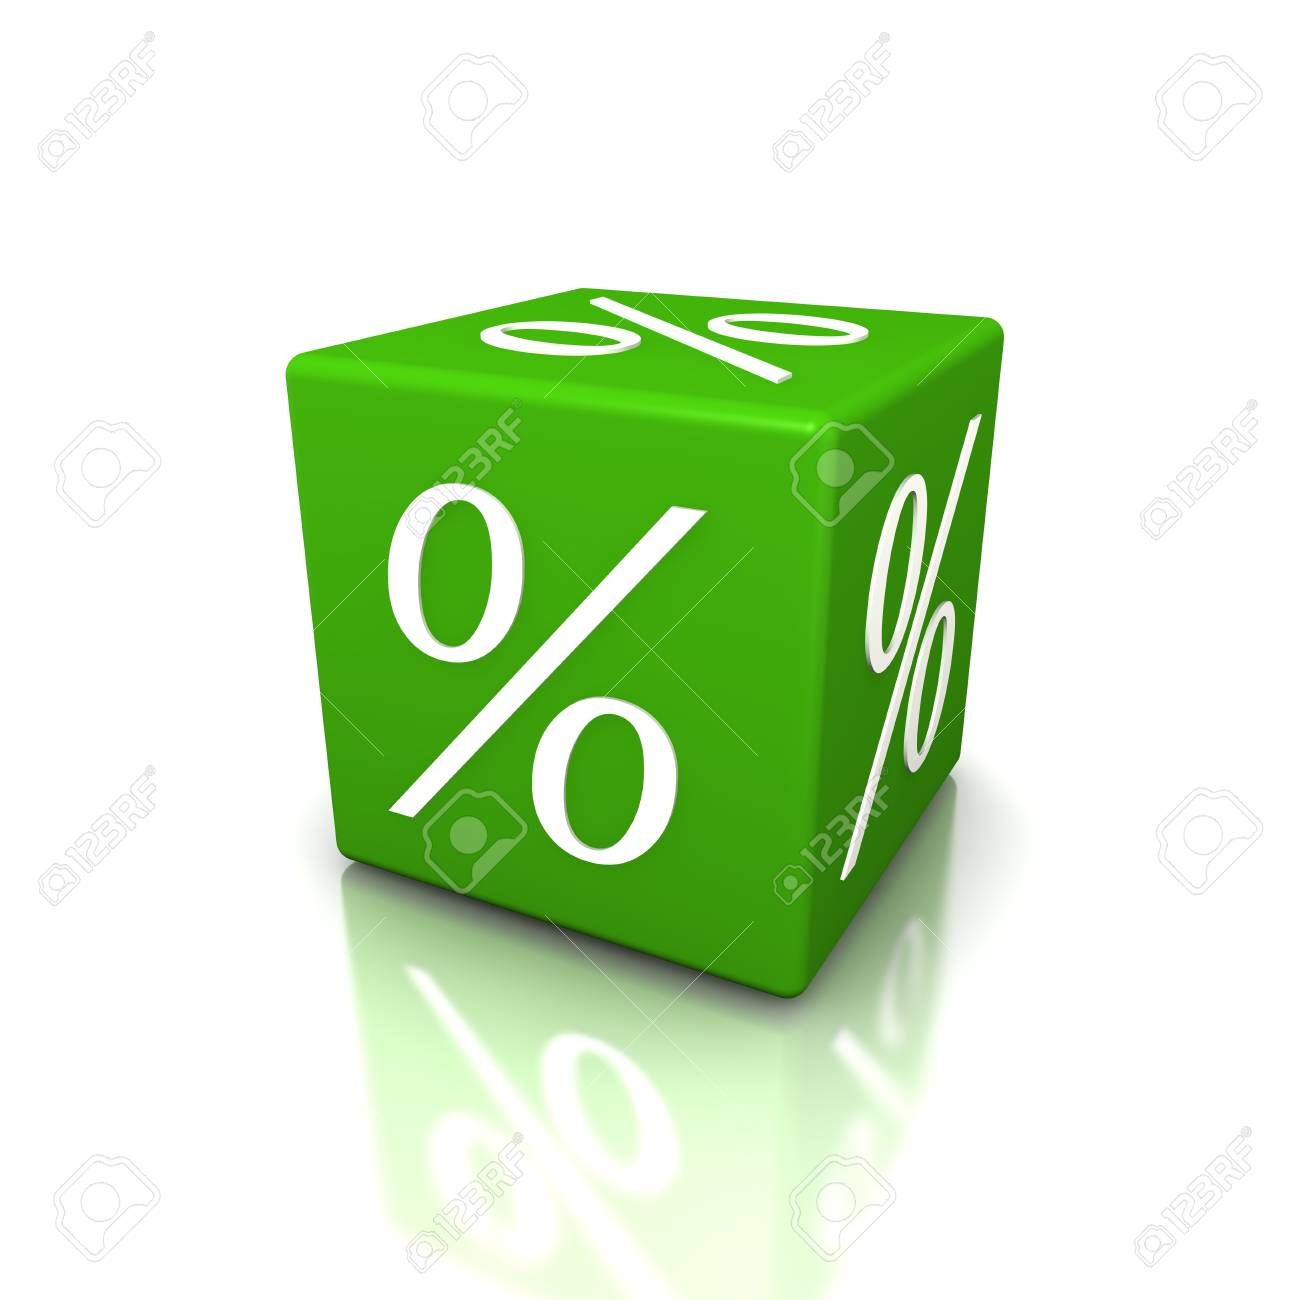 Discount cube on a white background Stock Photo - 15705424